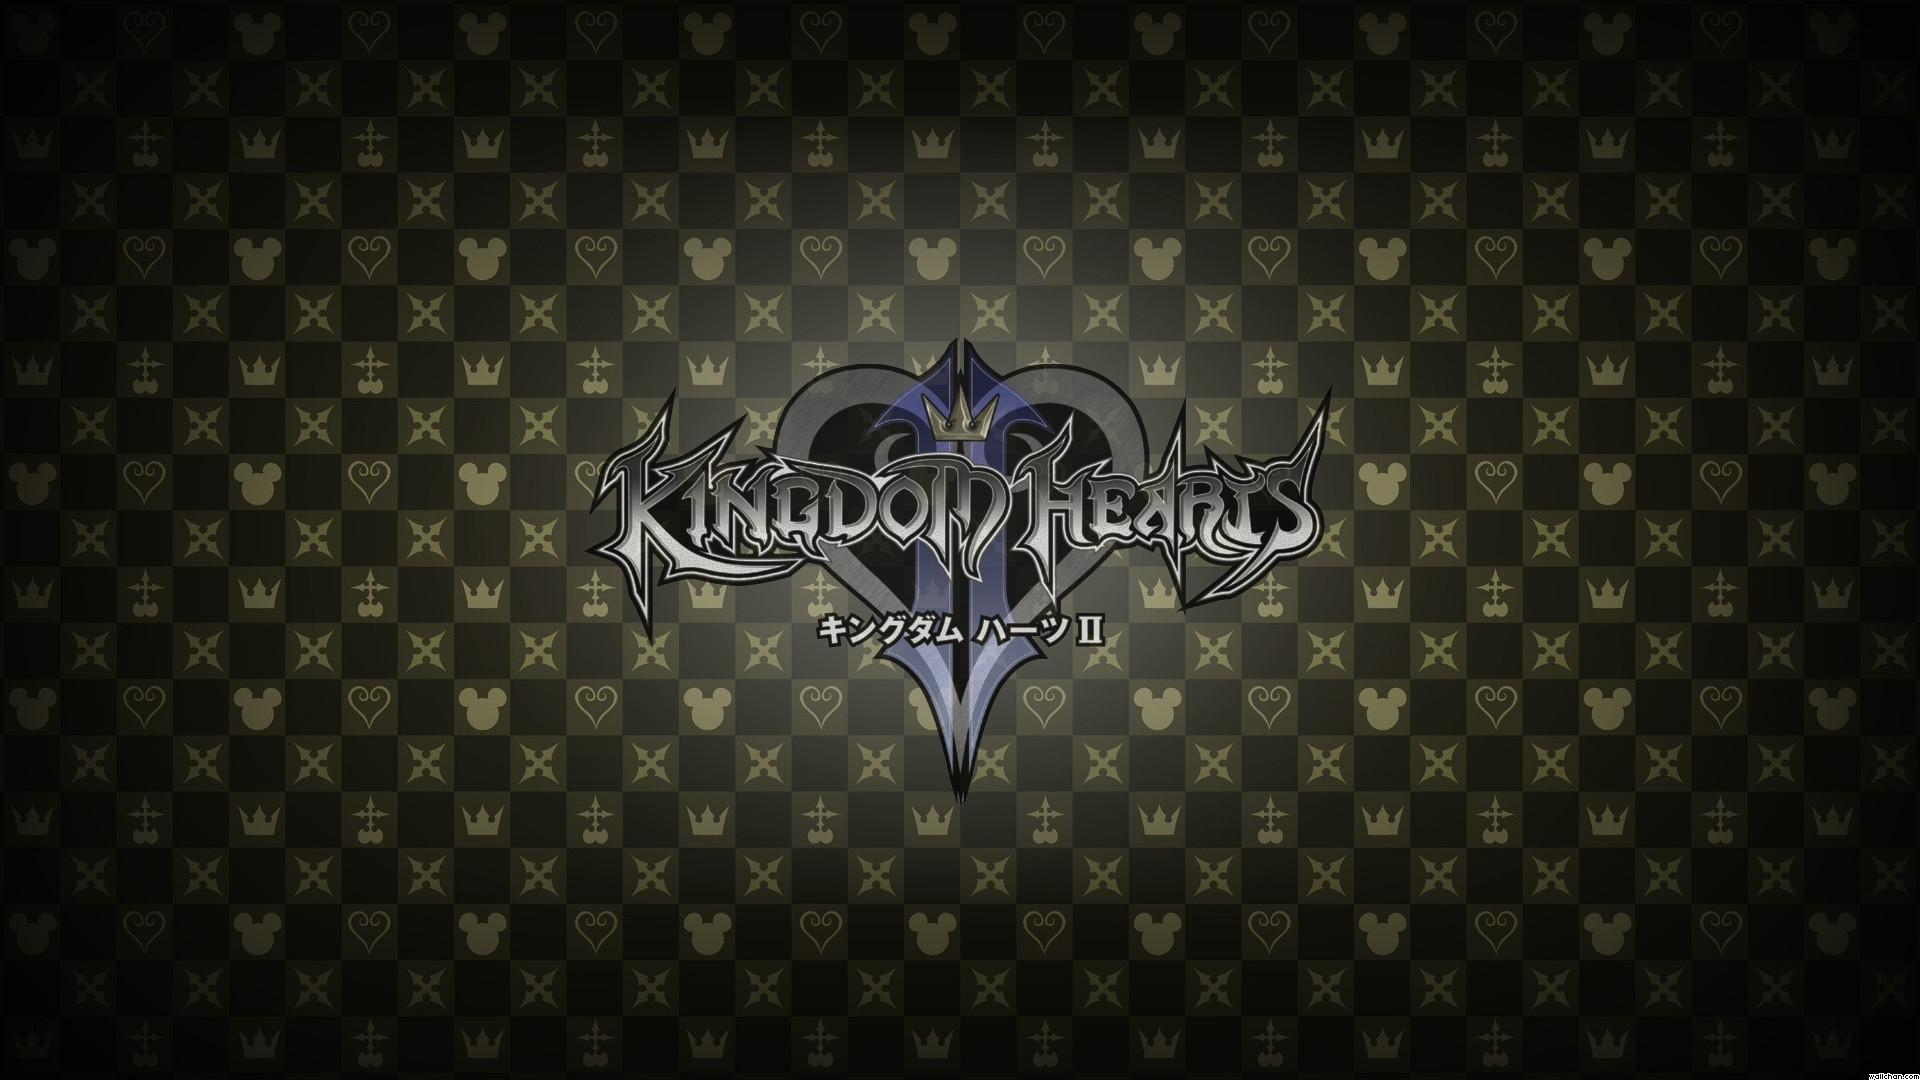 Here is a collection of Kingdom Hearts wallpapers that I compiled. Feel  free to use them as your own wallpapers. – Album on Imgur